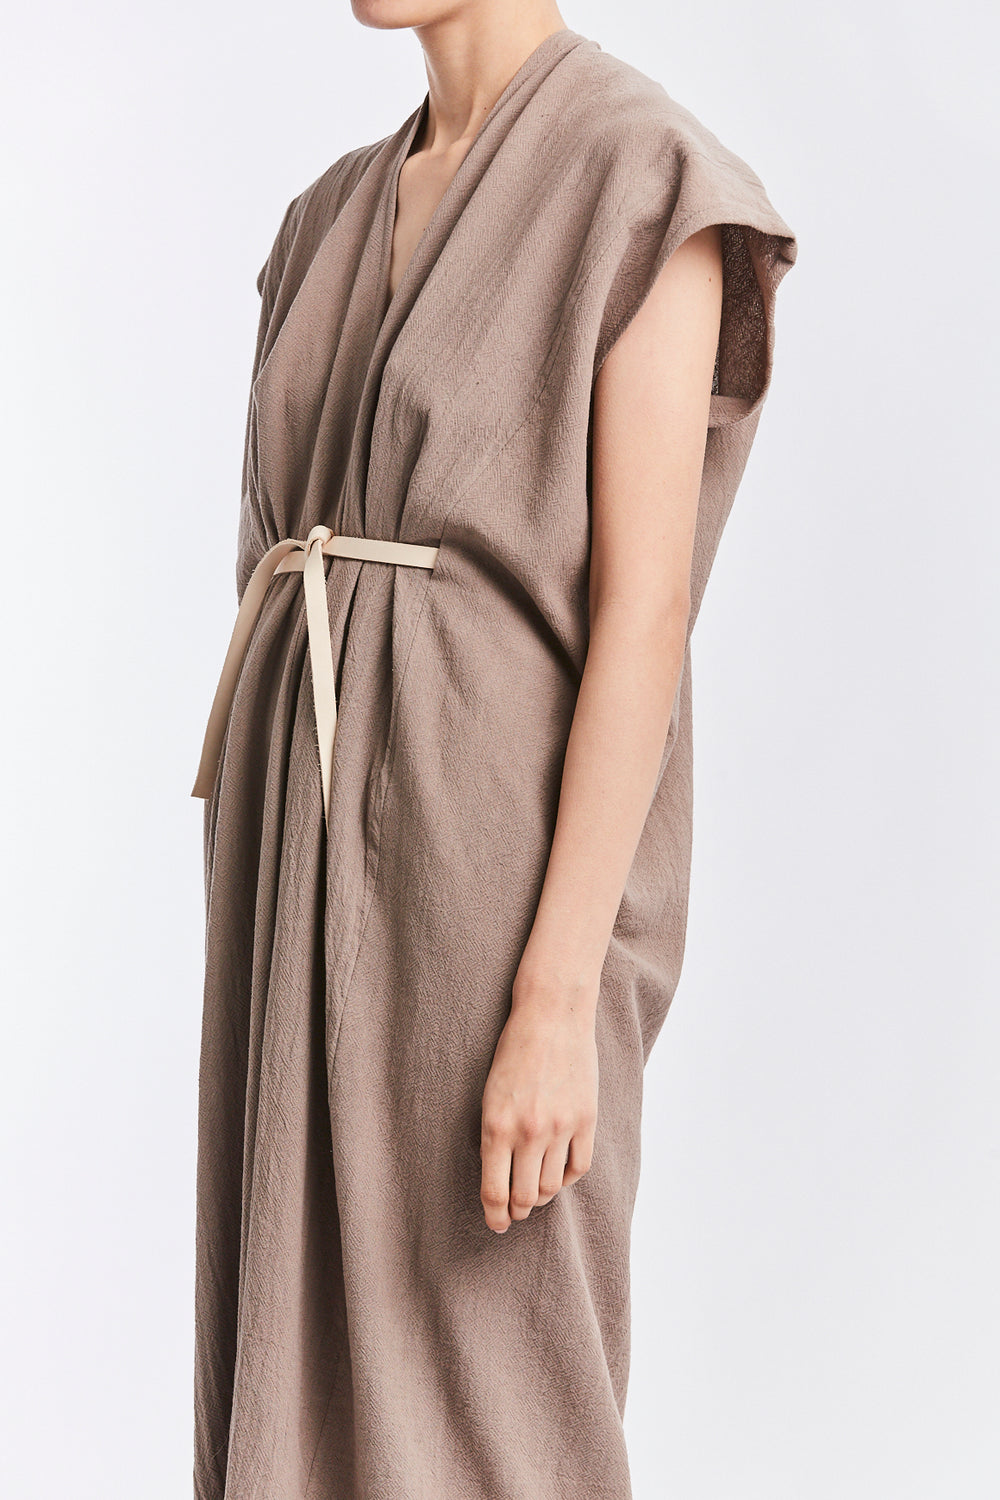 Knot Dress, Textured Cotton in Faroe